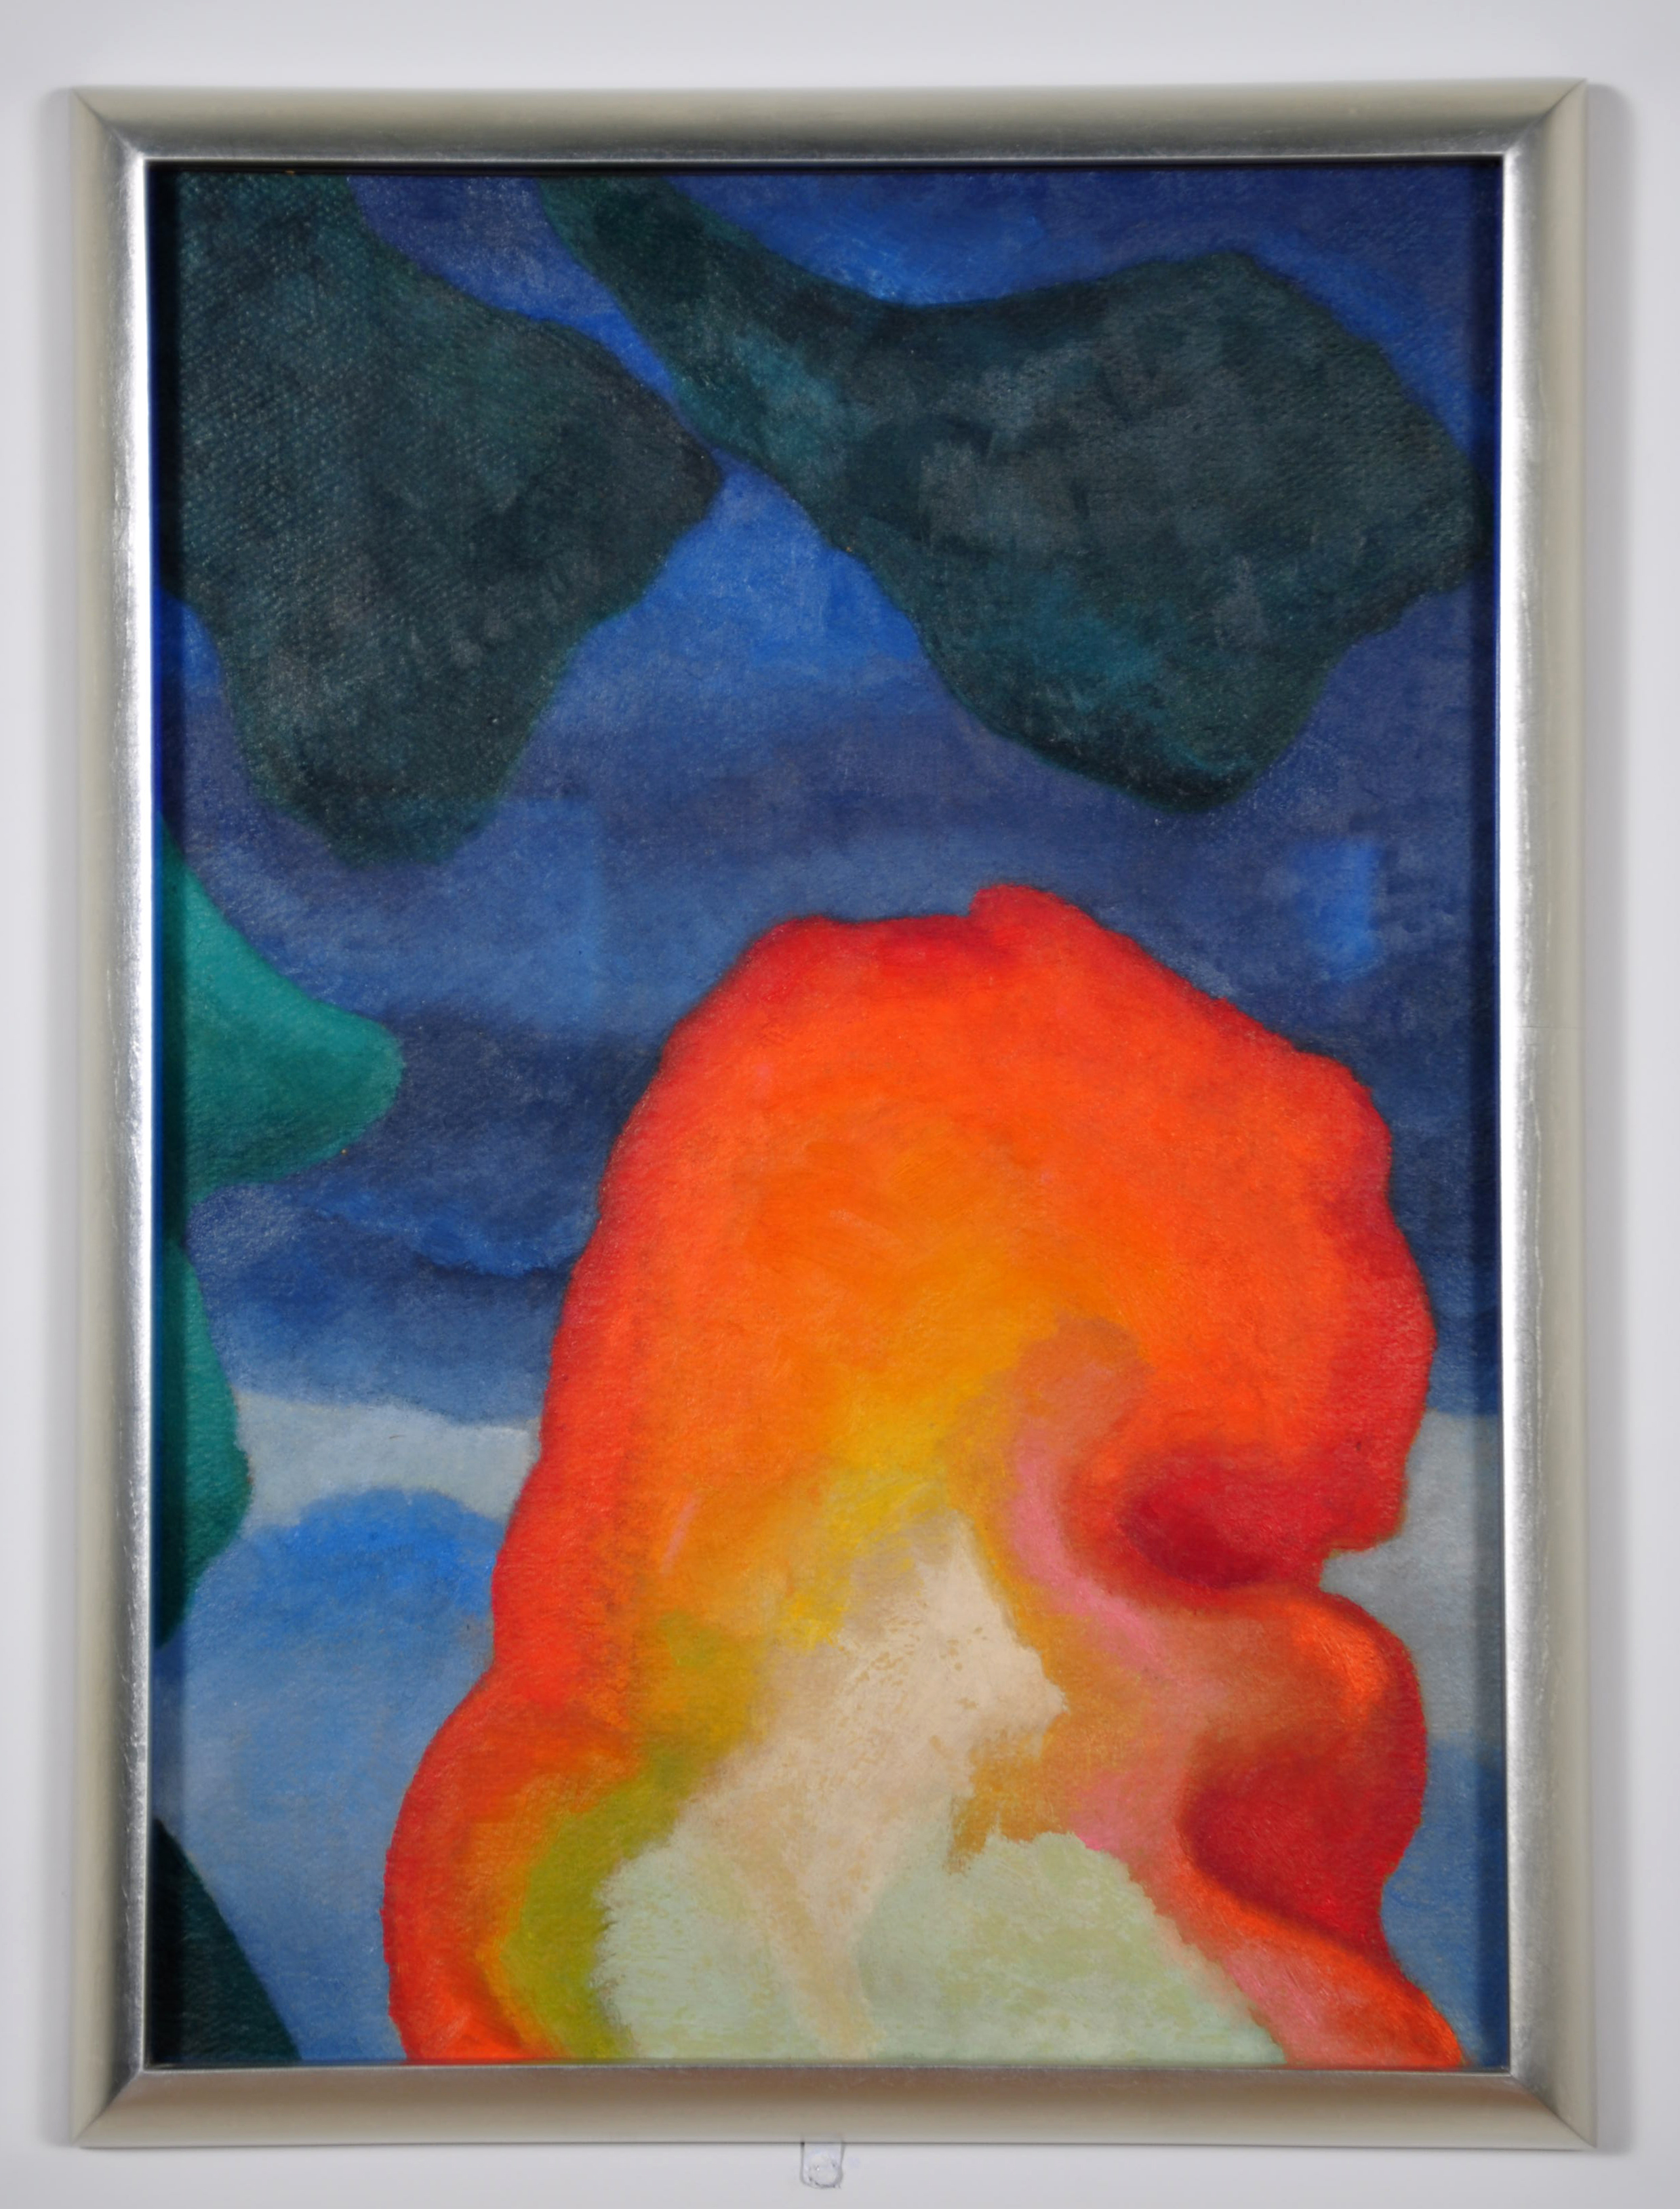 Georgia O'Keeffe's painting is a highlight in The Seymour Lawrence Collection. This collection features paintings and drawings from American artists.